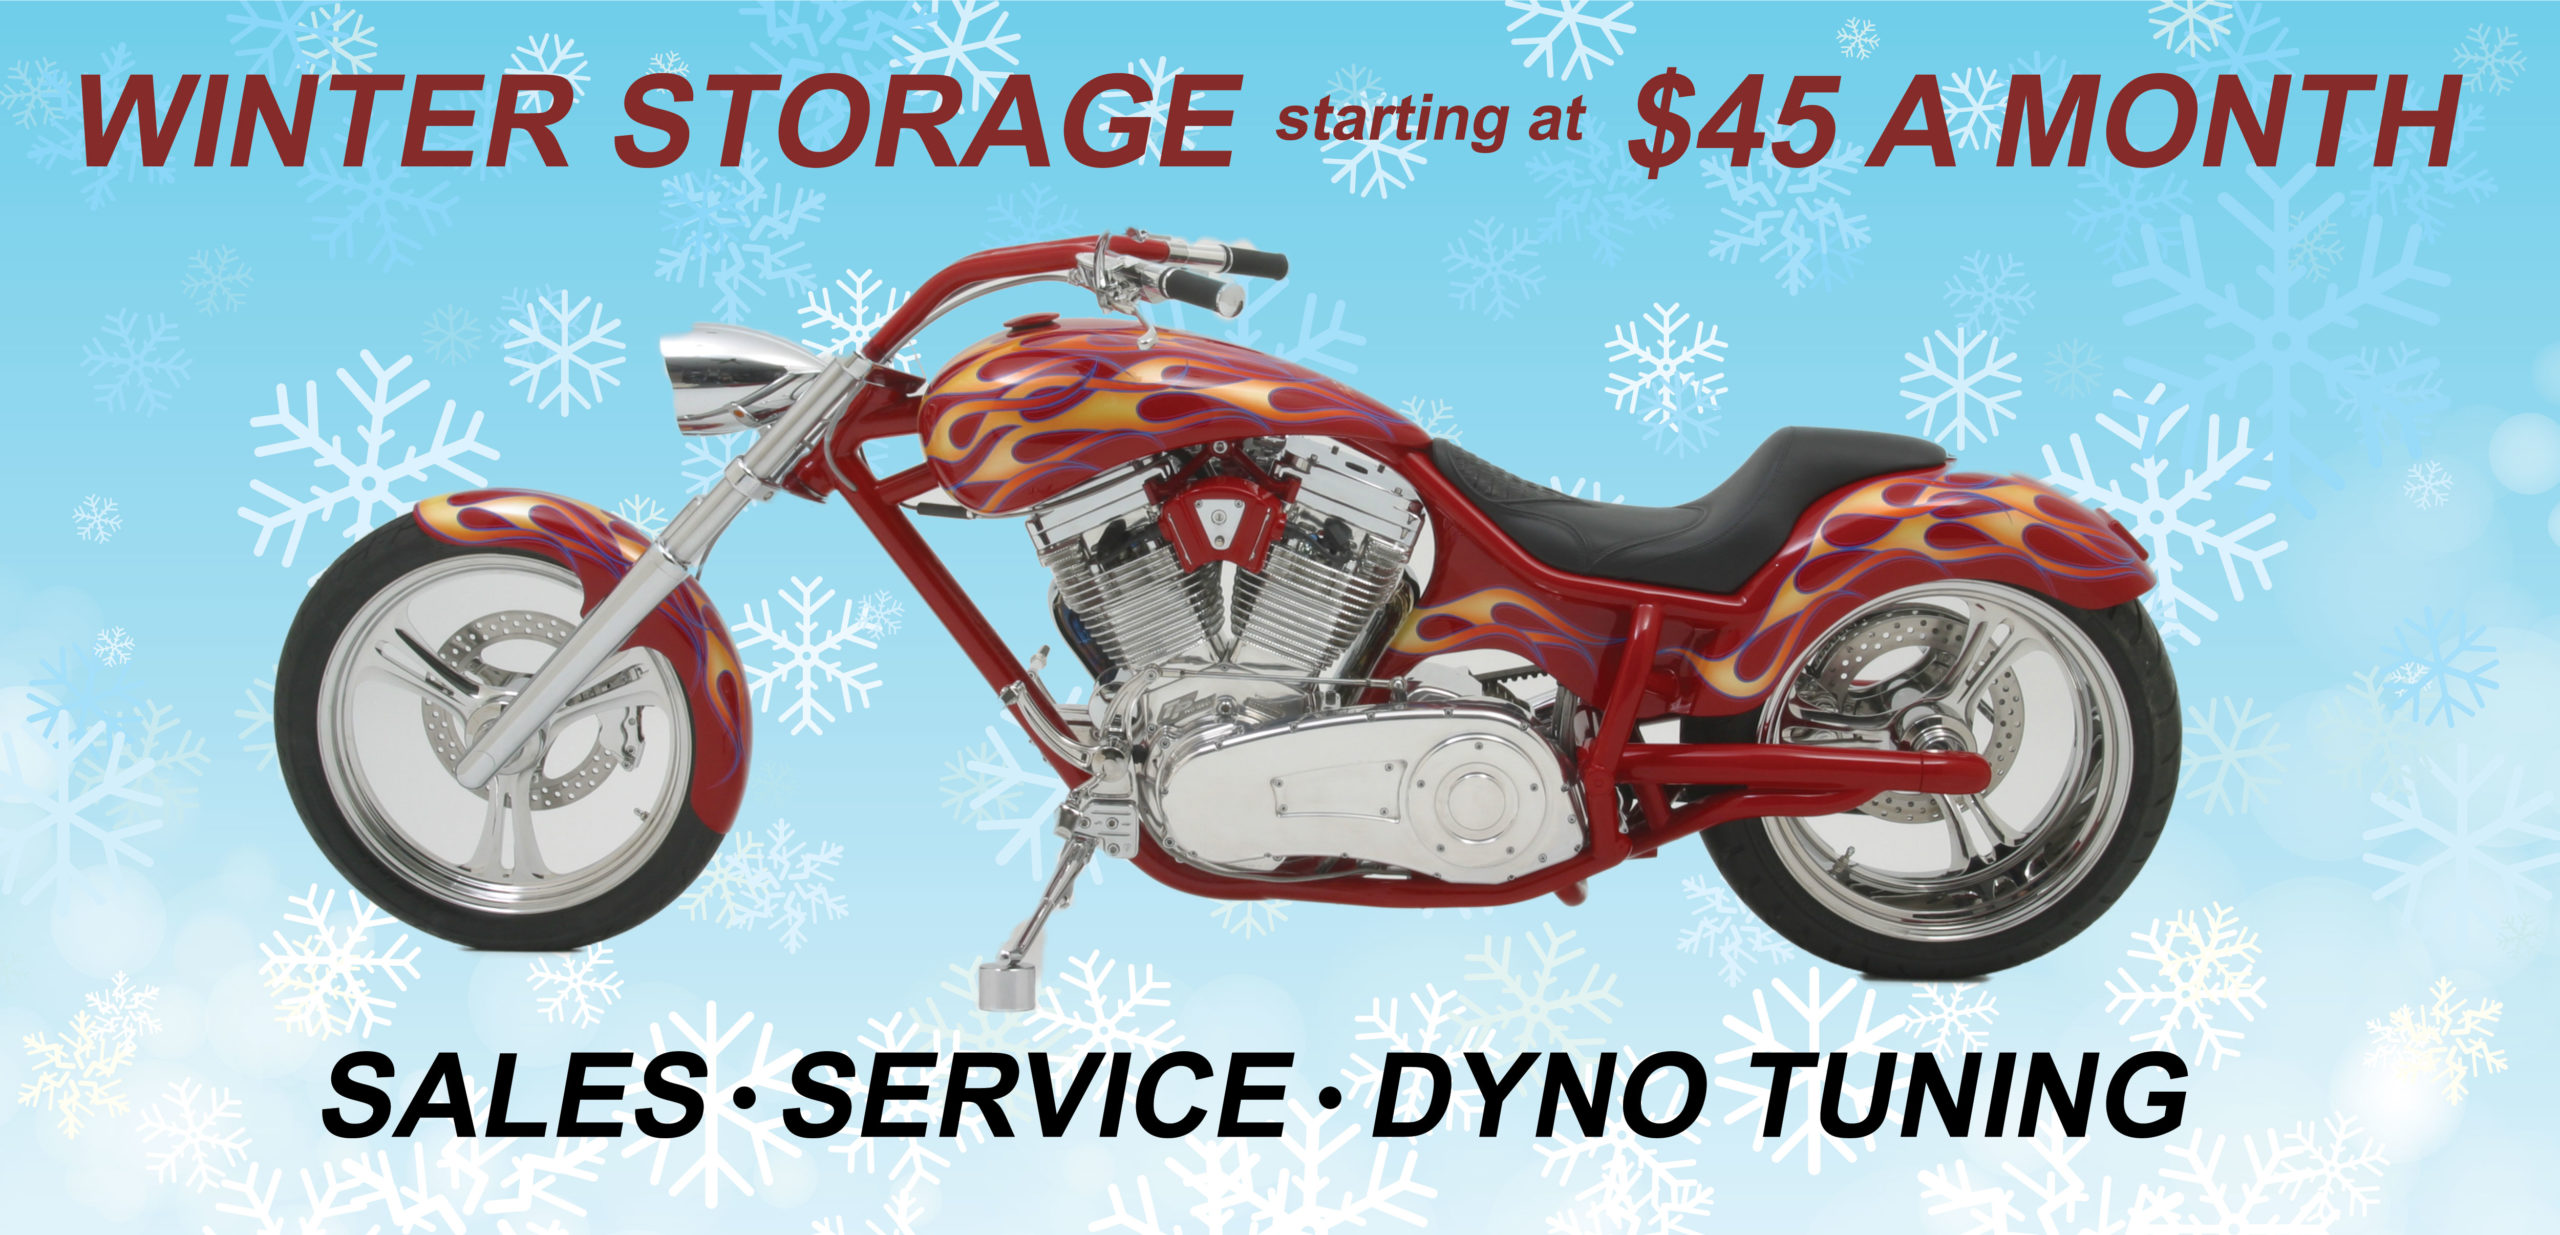 WINTER-STORAGE-AD-SAVED-FOR-WEB